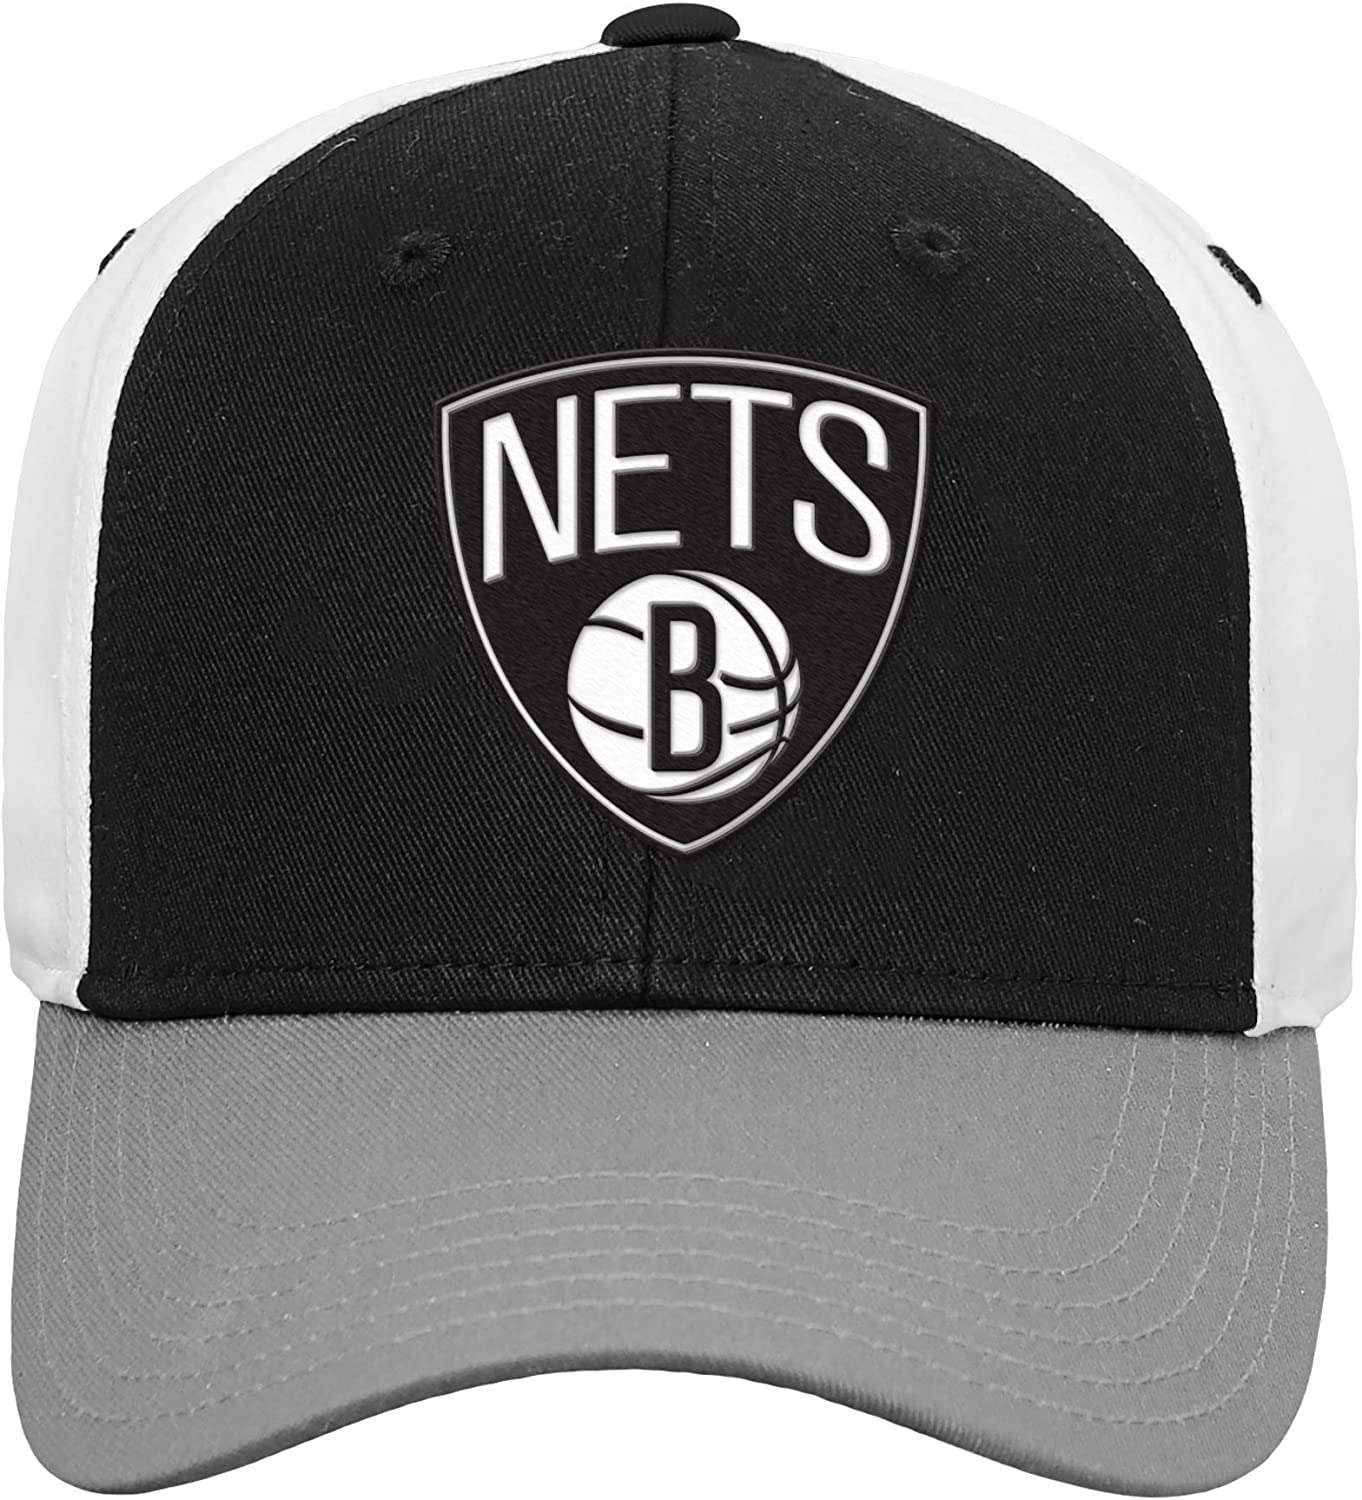 NBA Youth Boys 8-20 Tee /& Hat Set